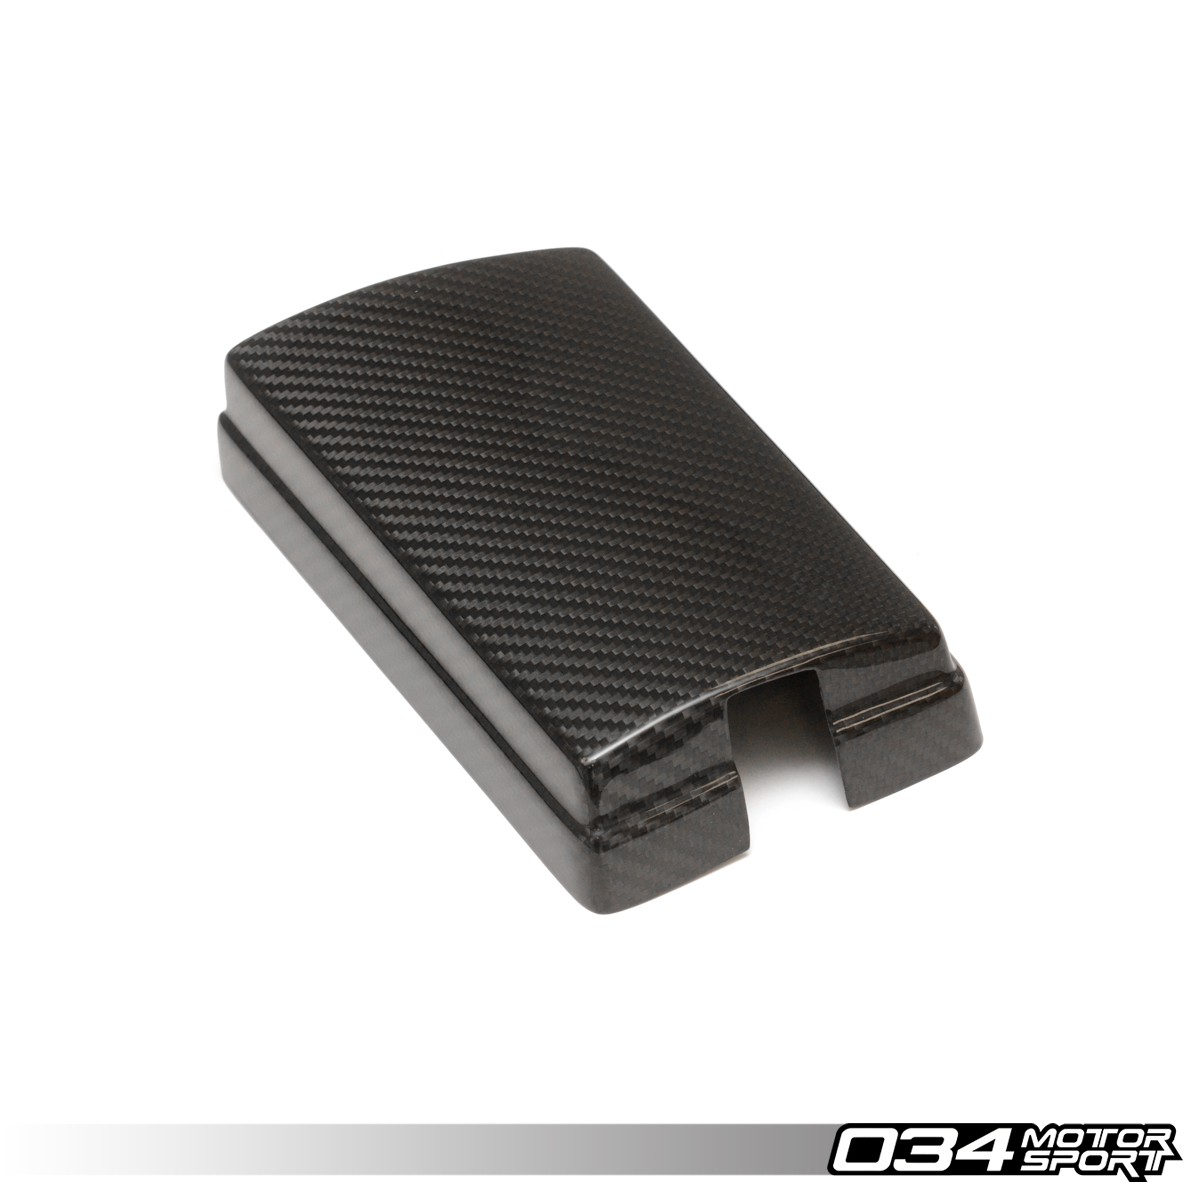 Carbon Fiber Fuse Box Cover Mkvii Volkswagen Gti Golf R 8v Black Audi A3